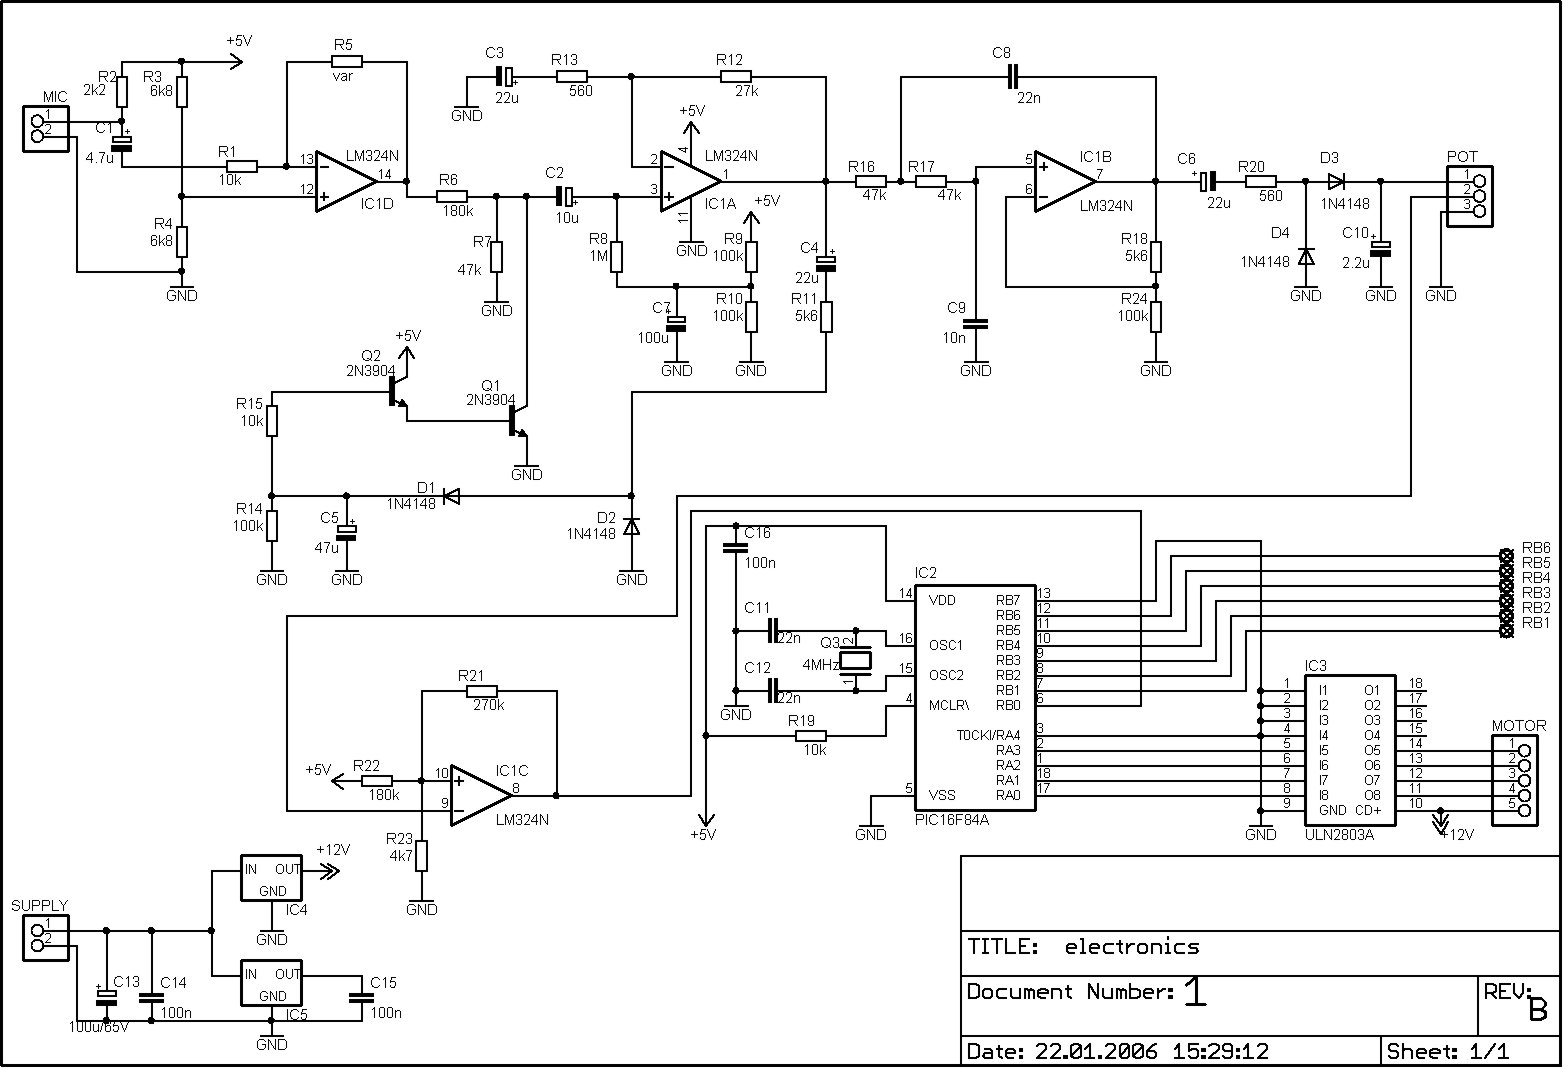 Pic16f84a Discolight Effect With Bass Beat Control Circuit Diagrams Free Electronics Circuits Projects